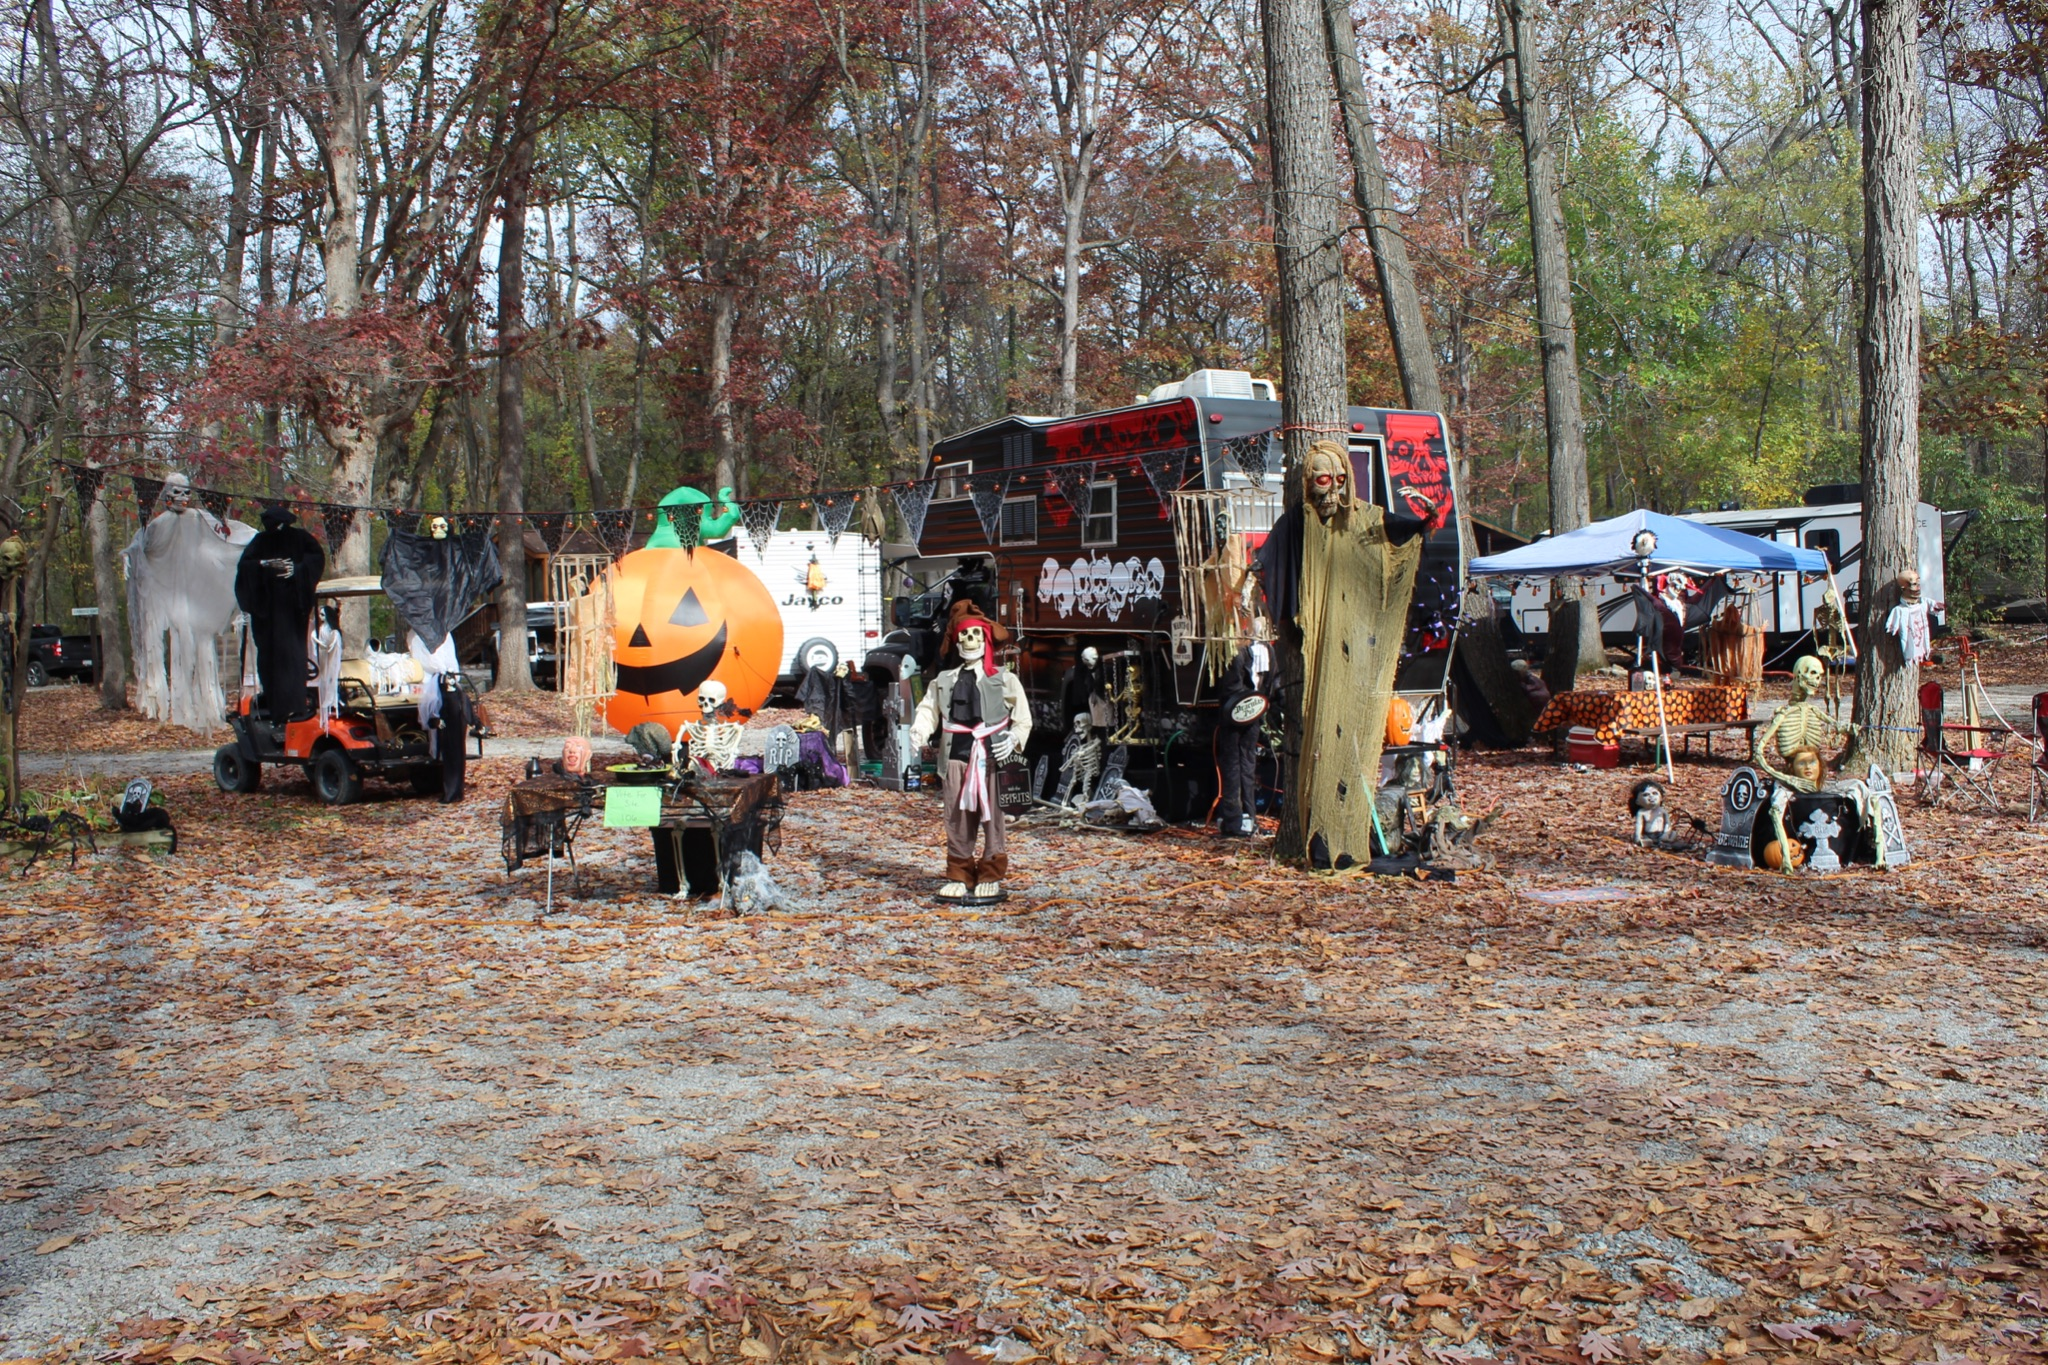 Campground decorated or halloween with large pumpkin